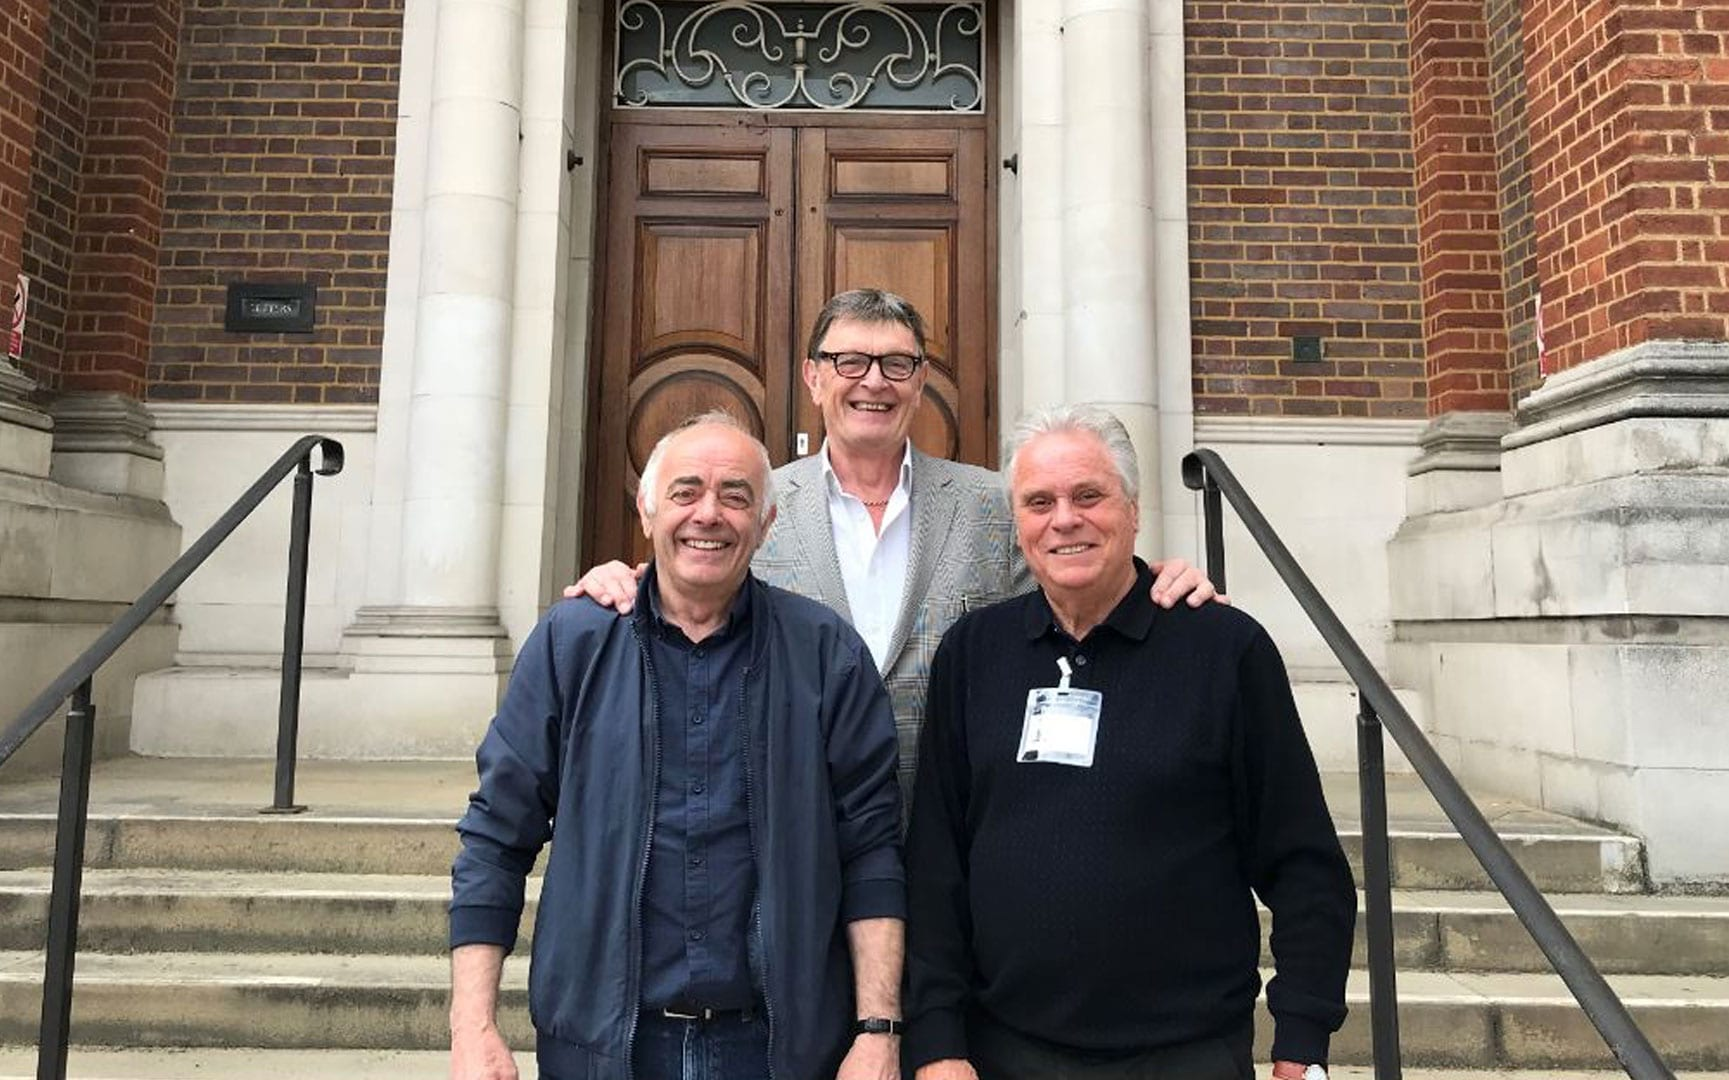 The Class of '63 Return to CONEL